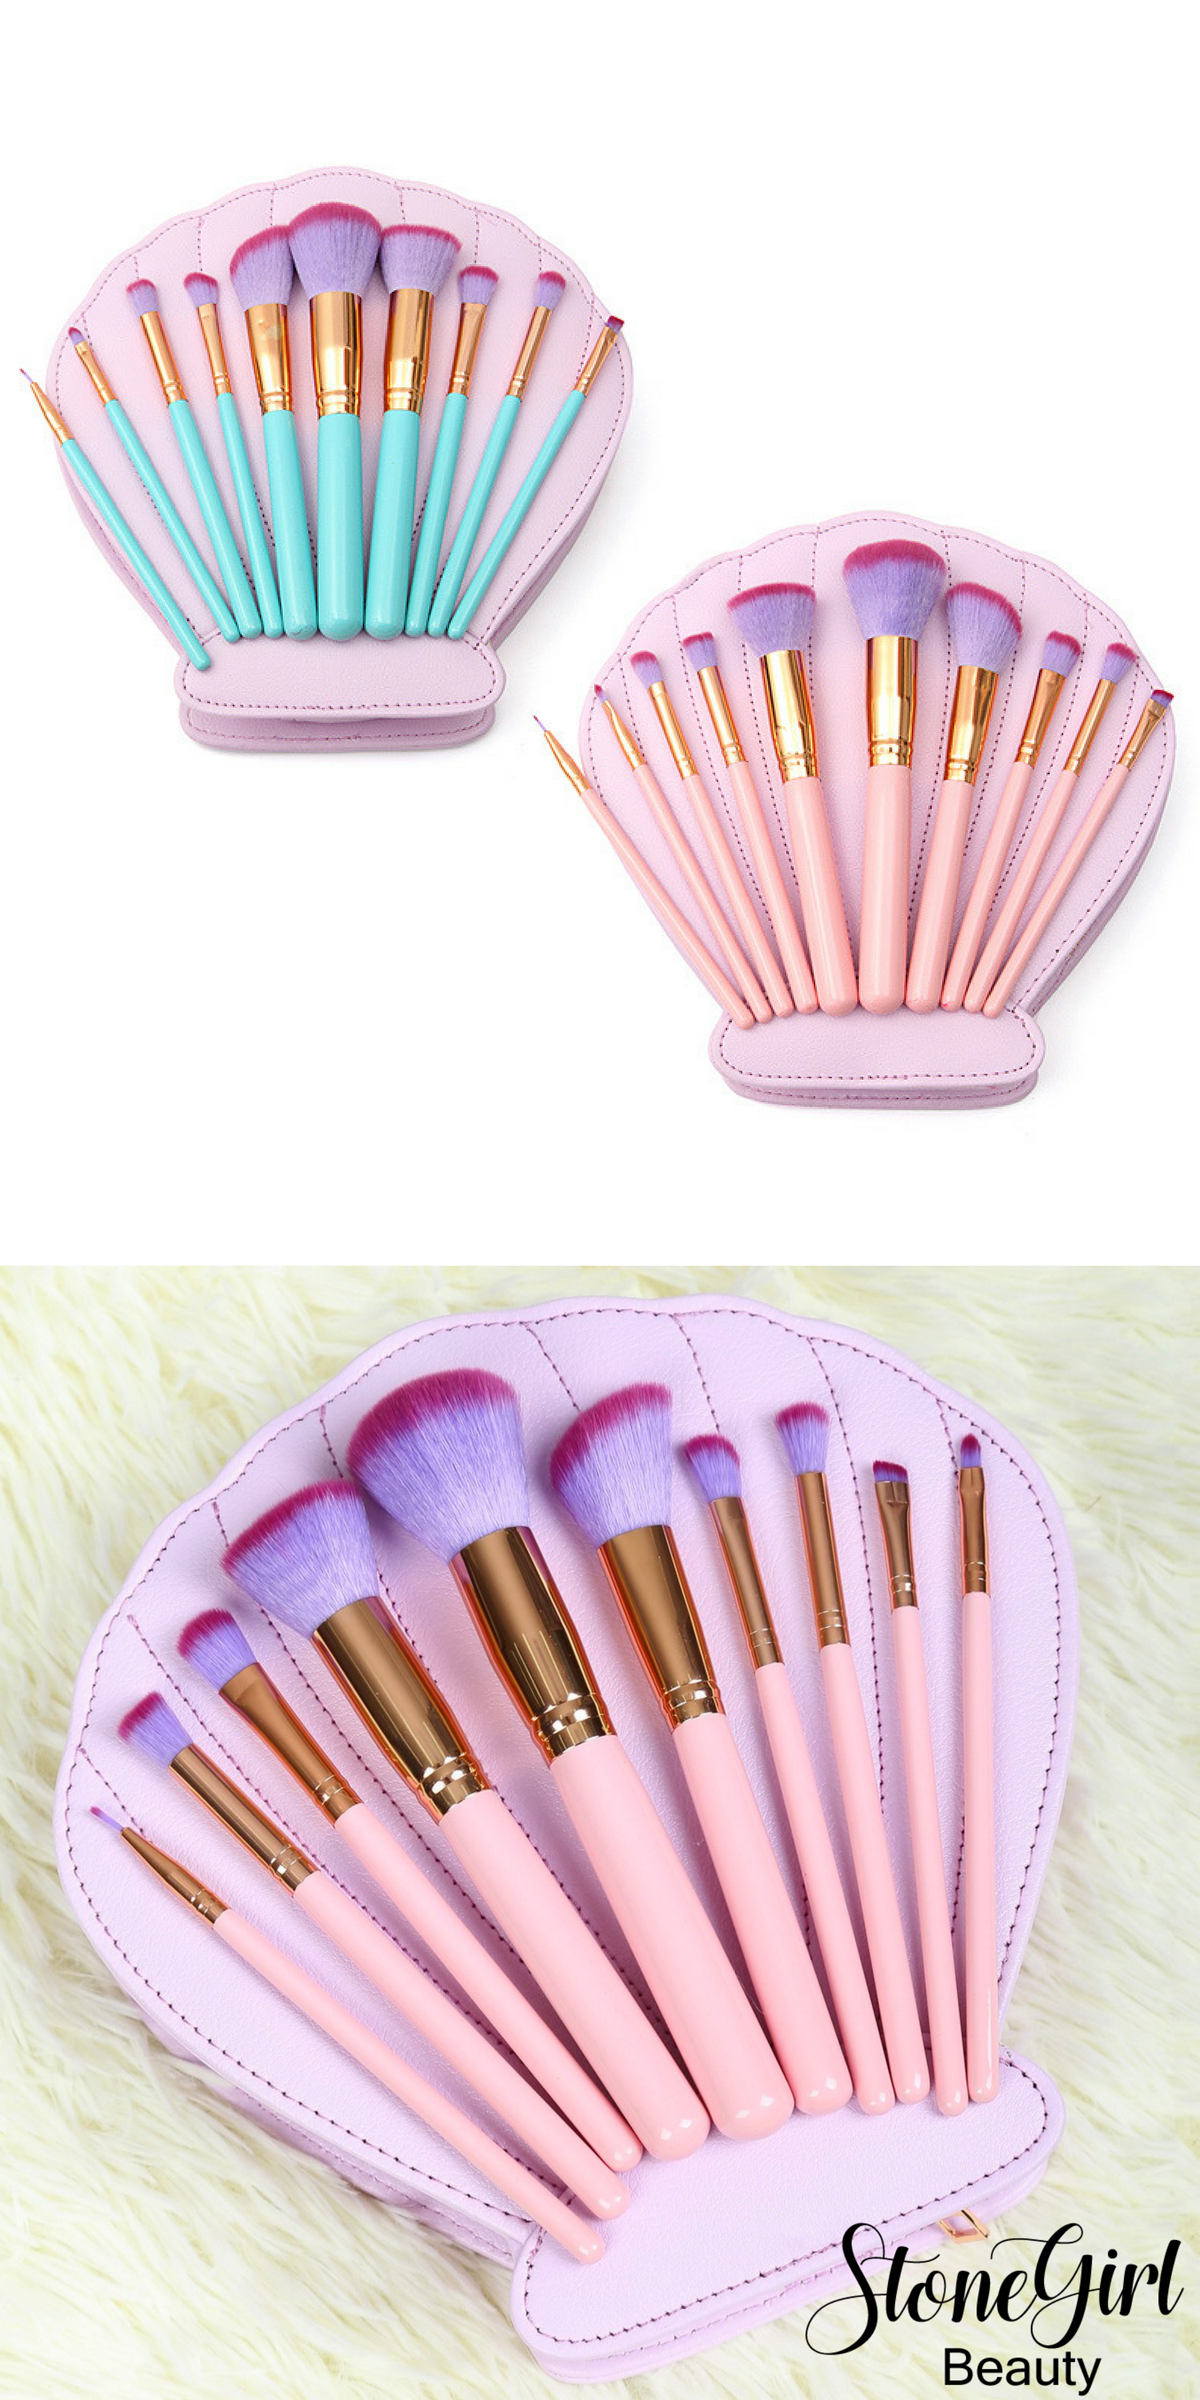 This makeup brush set includes 10 brushes in a